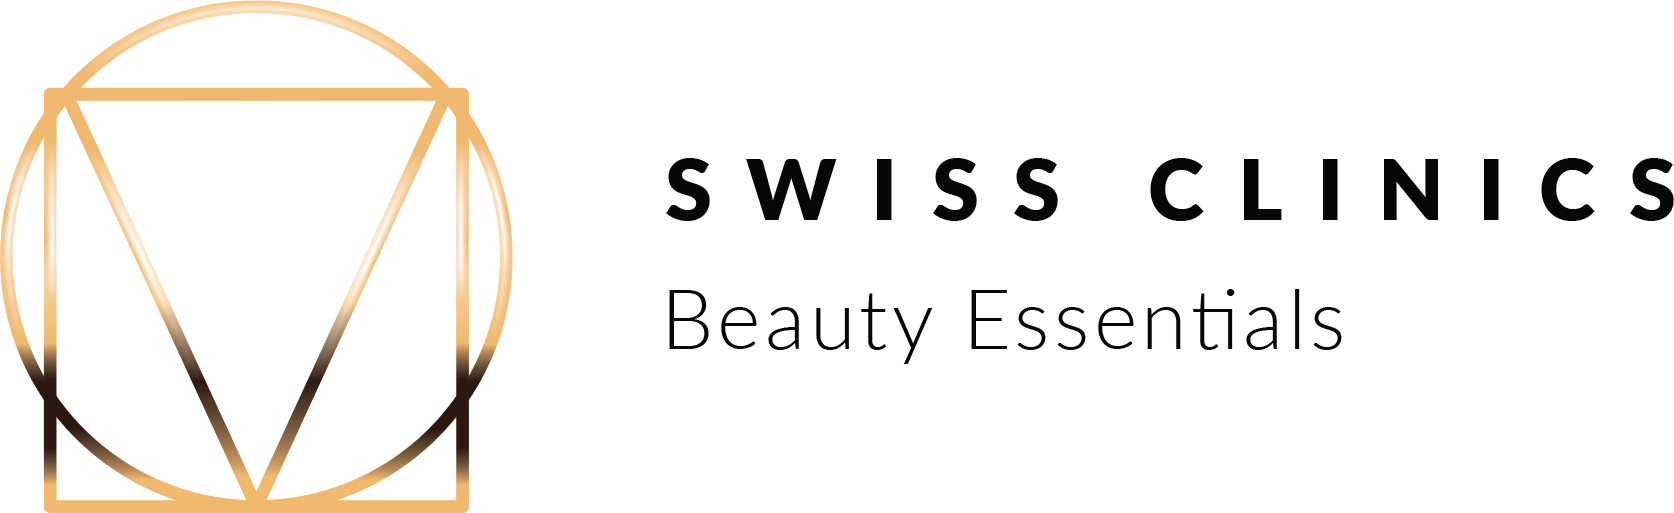 Swiss-Shop.RO – Swiss Beauty Essentials supplements, made in Romania, are recognized for the quality and benefits of patented ingredients: from marine collagen, to essential vitamins and minerals from fruits and vegetables (A, D3, K2, C, E, CoQ10 vitamins) to alkaline minerals natural and antioxidants.